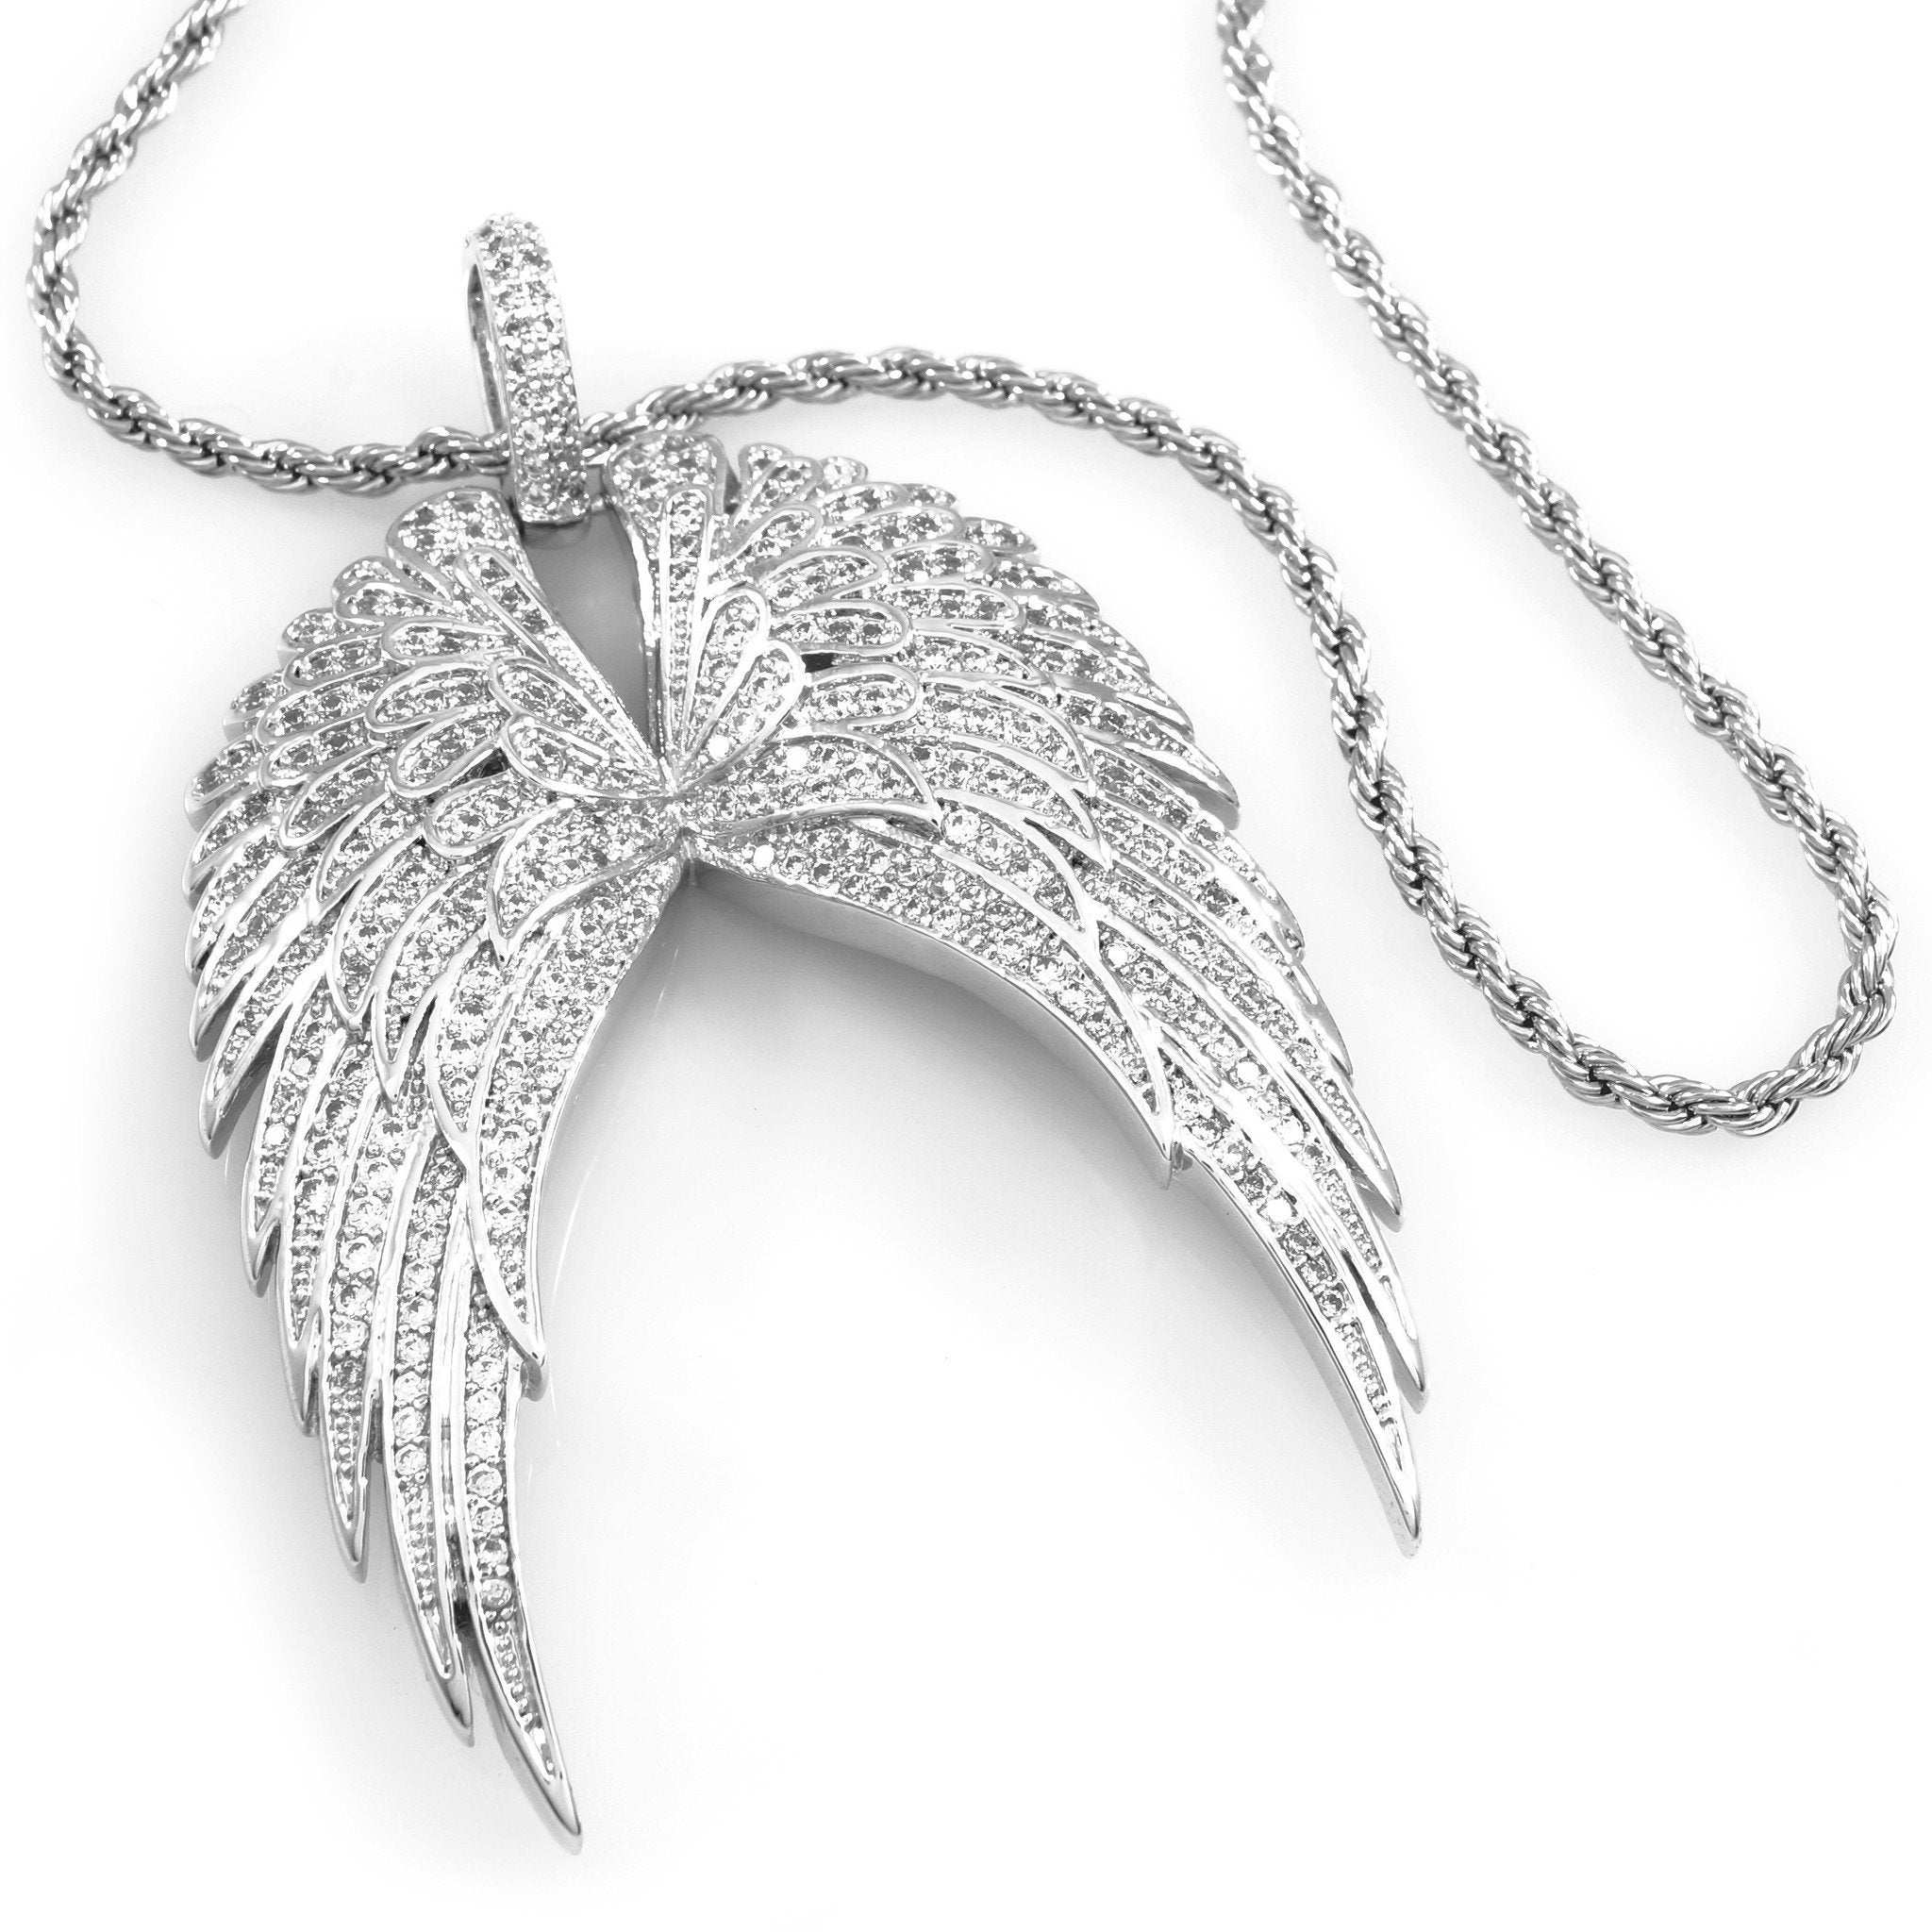 Affordable 18K White Gold Guardian Wing Pendant With Hip Hop Chain - White Background